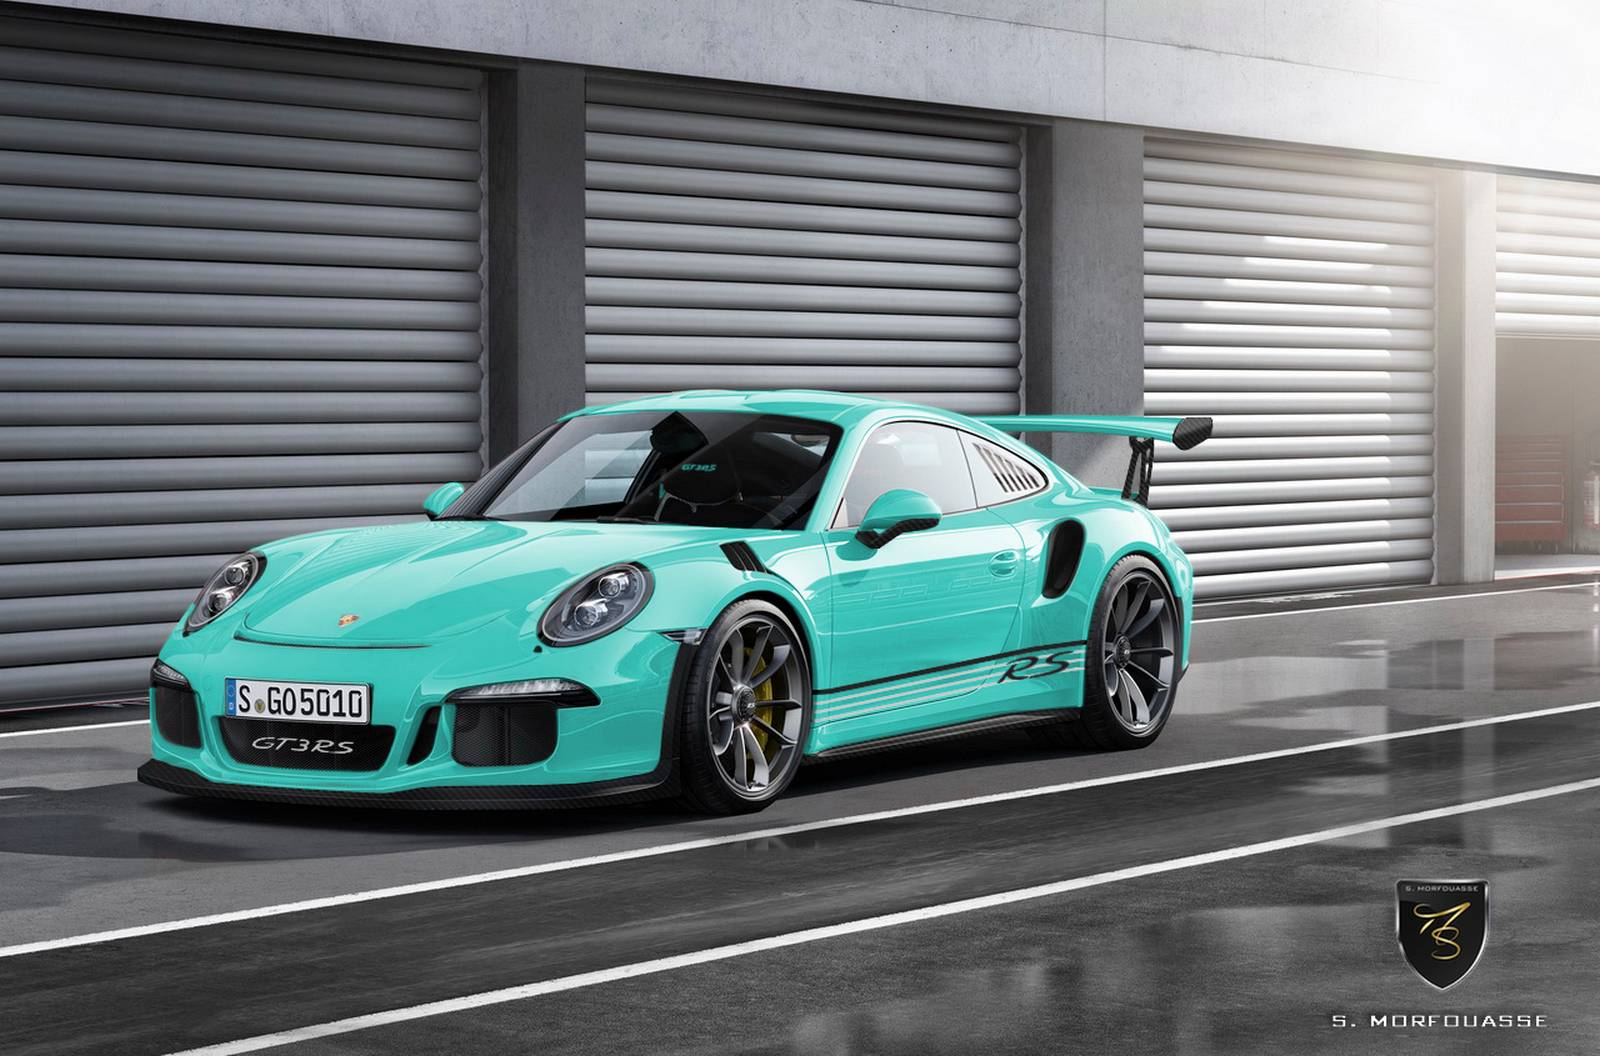 2016 Porsche 911 Gt3 Rs Imagined In Multiple Colors Gtspirit